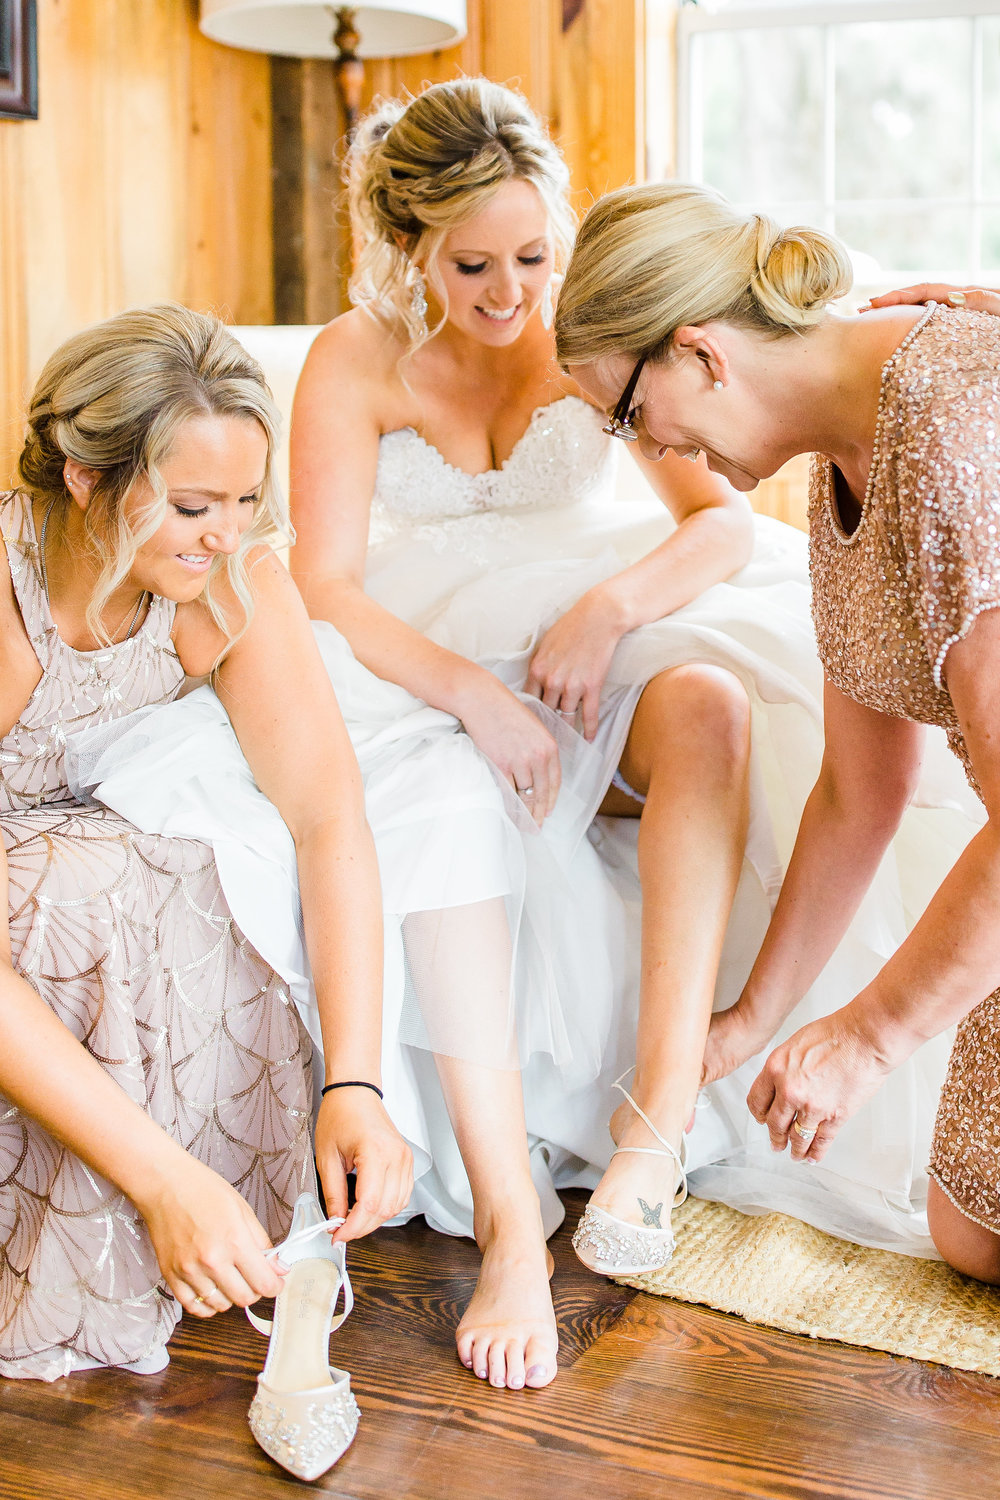 savannah-bridal-shop-i-and-b-couple-gretchen-and-alex-fun-and-unique-tropical-wedding-at-captains-bluff-st-simons-island-wedding-marianne-lucille-photography-5.jpg